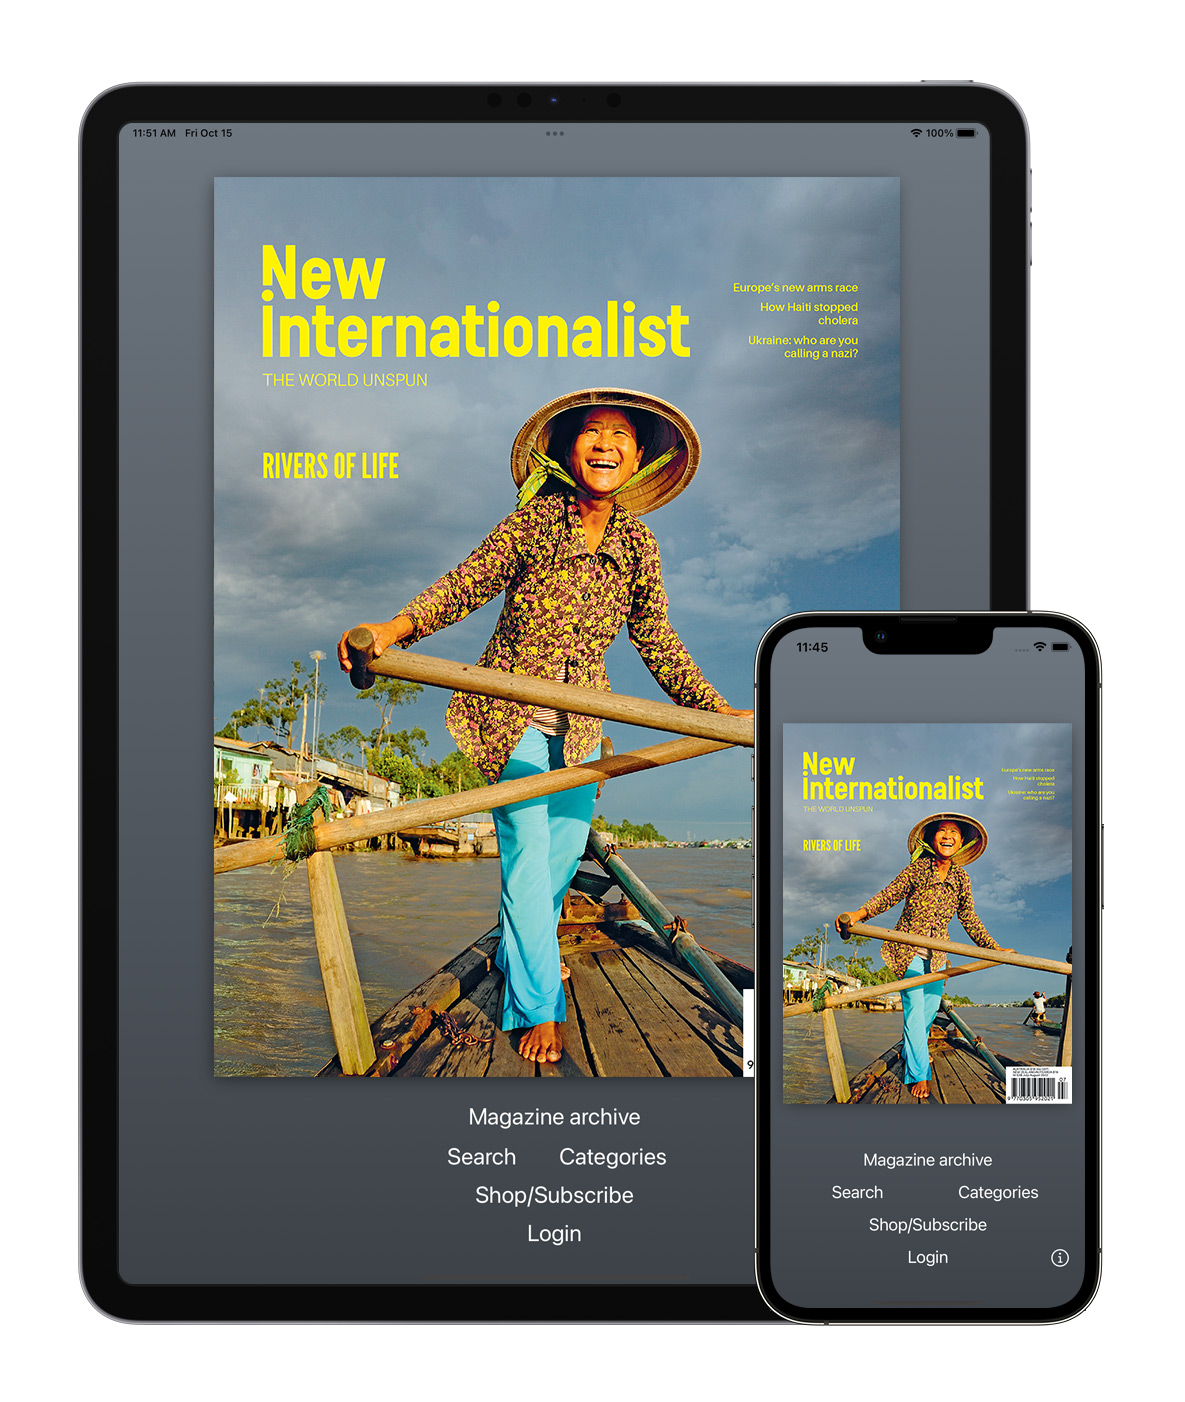 New Internationalist magazine app for iPhone, iPad and iPod Touch.